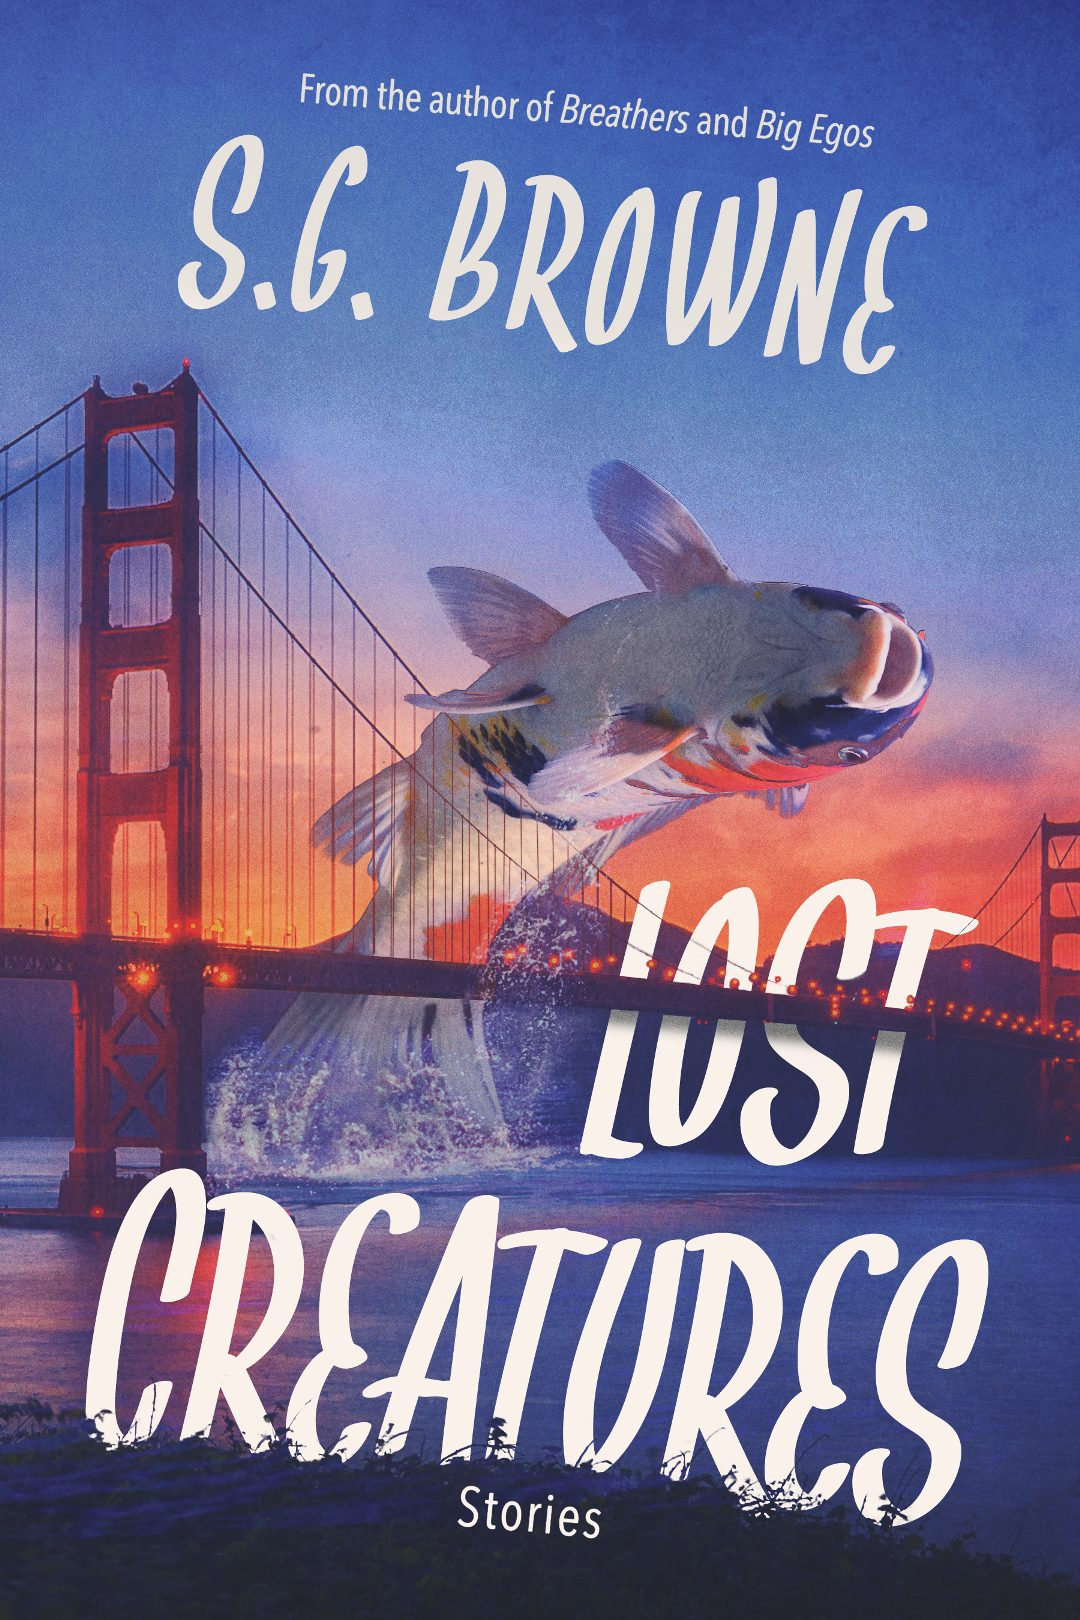 S.G. Browne: Five Things I Learned Writing Lost Creatures